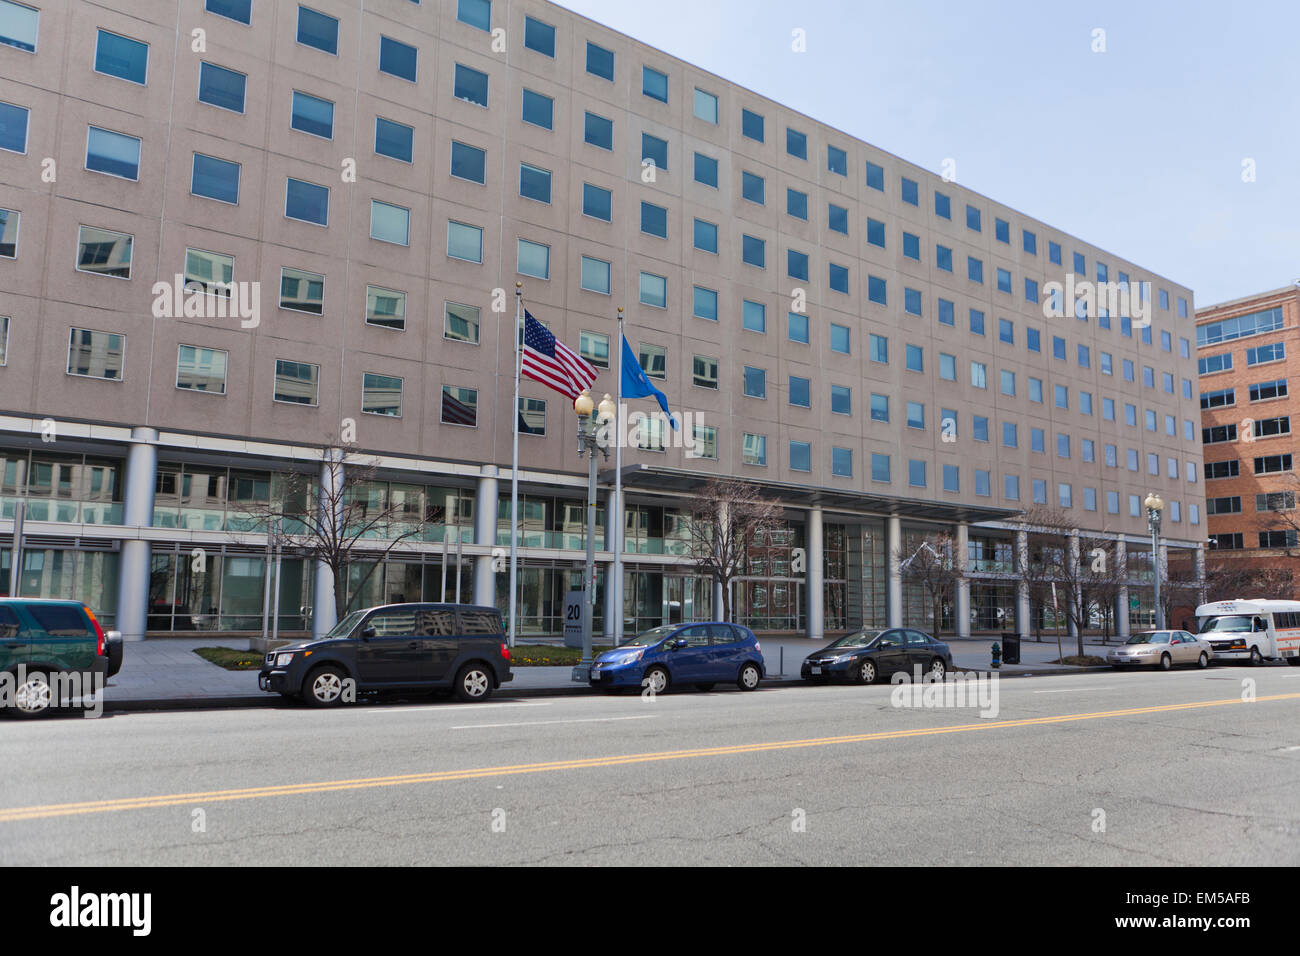 The US Citizenship and Immigration Services building - Washington, DC USA - Stock Image